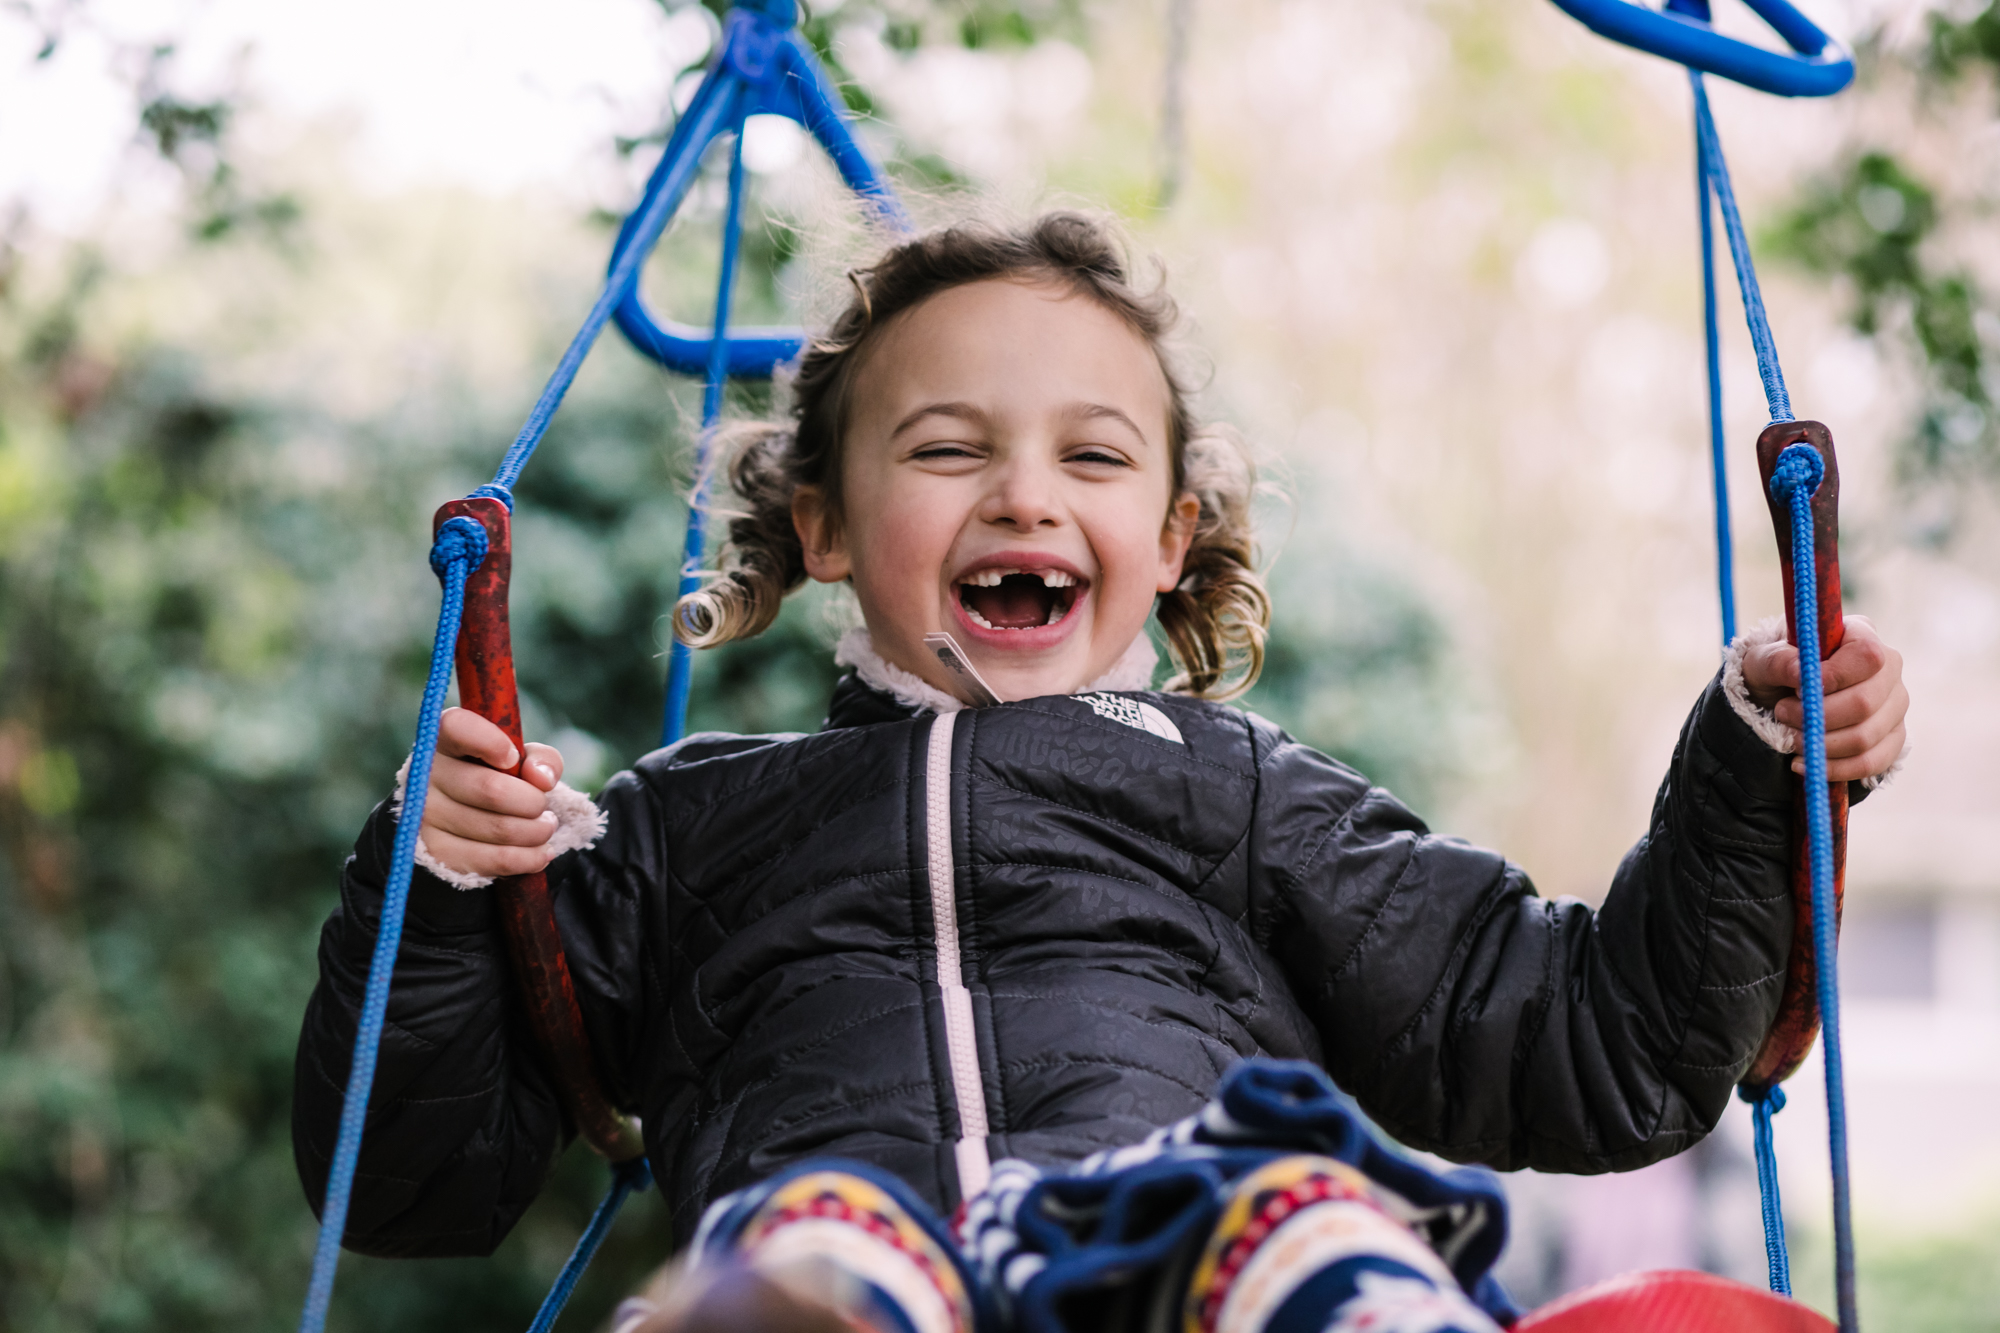 a girl smiles with joy as she swings on a swing during a documentary family photography session